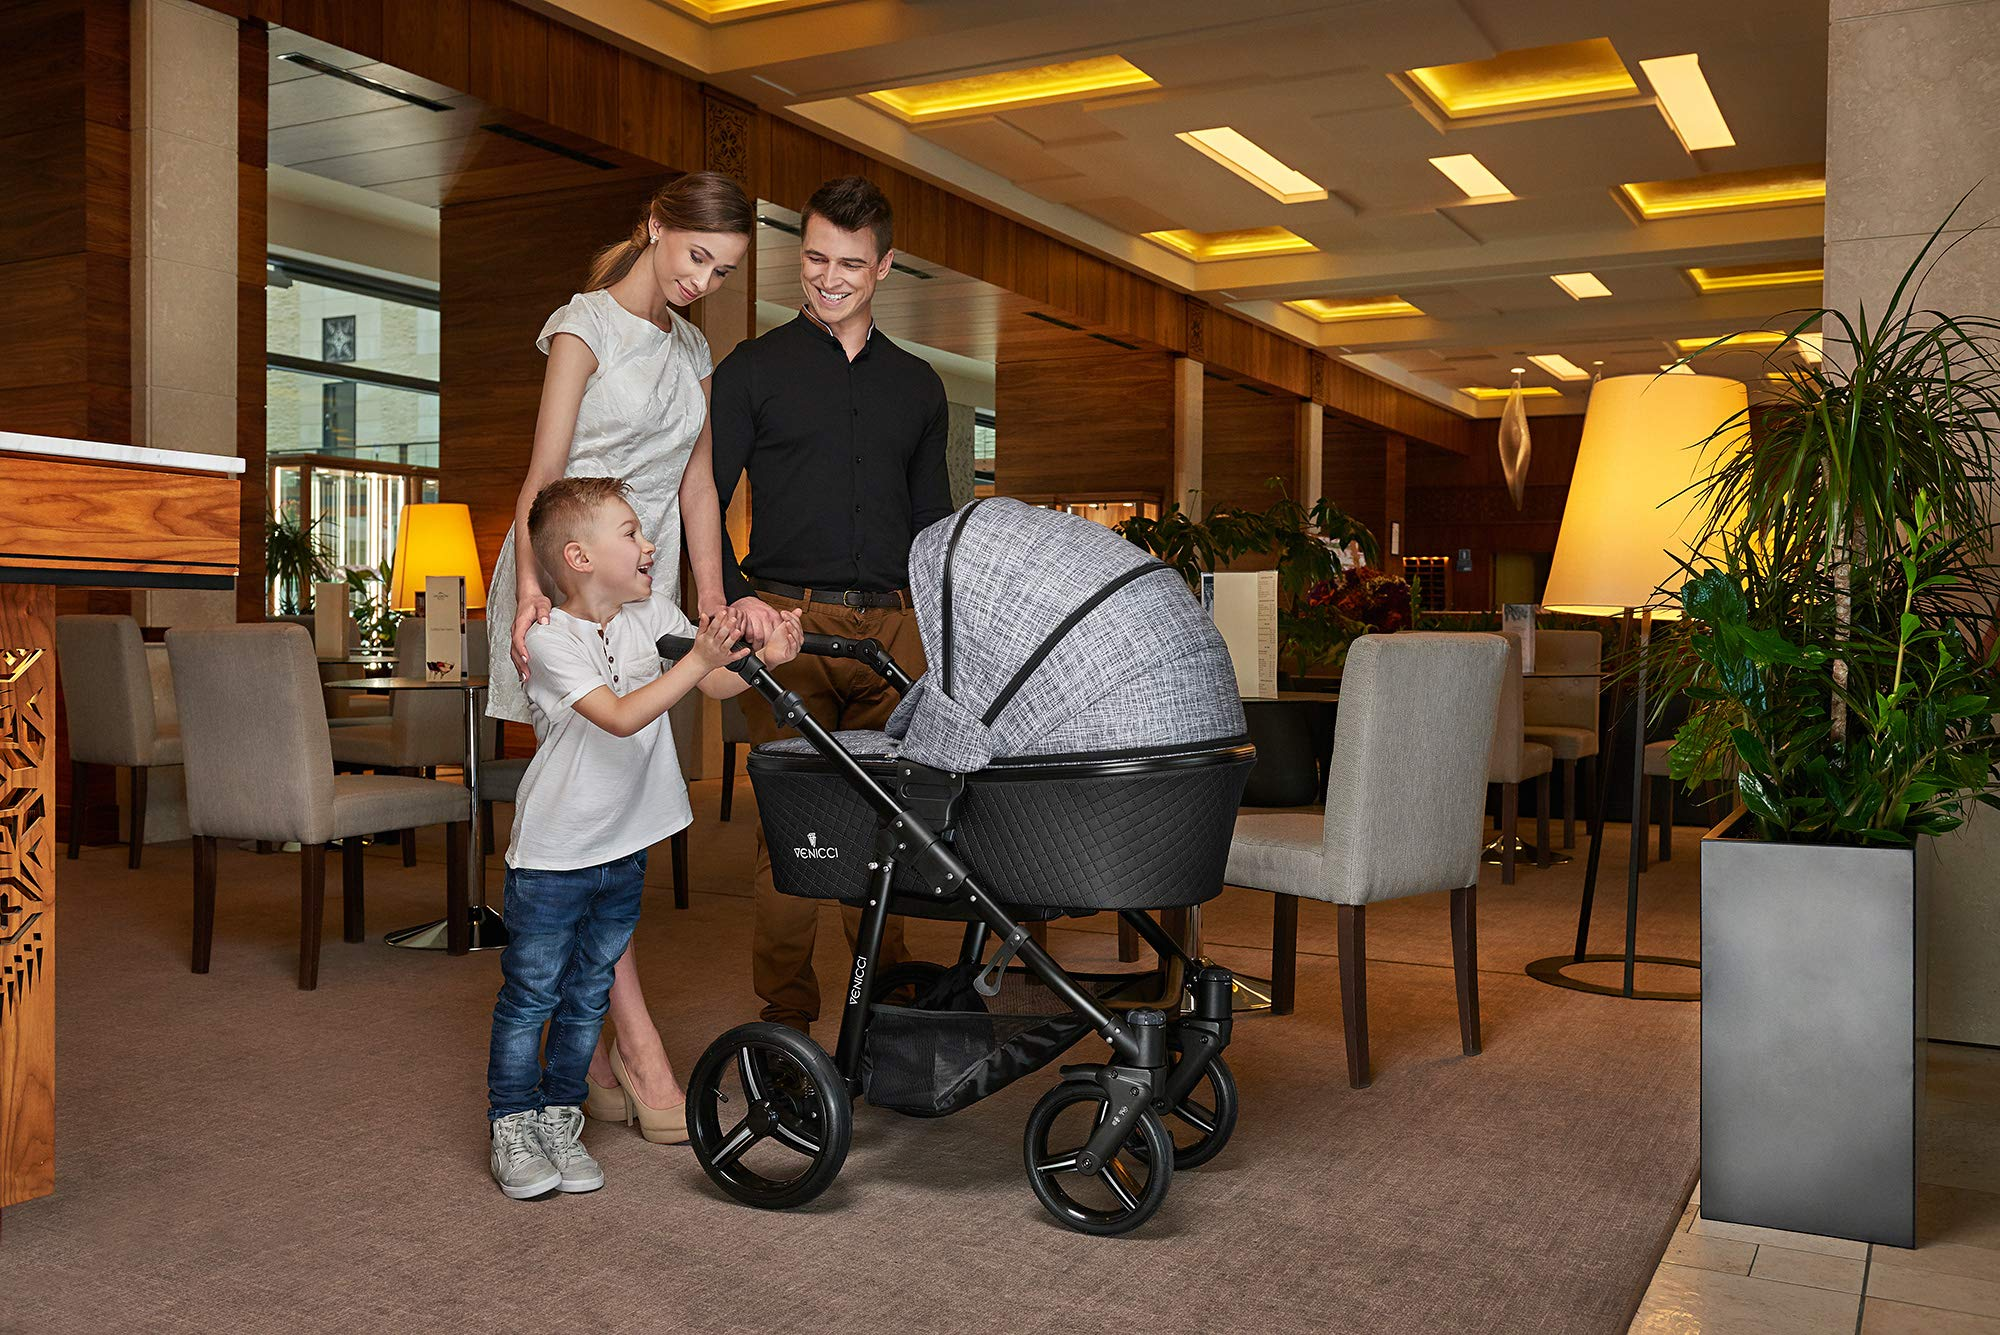 Venicci Shadow 2-in-1 - Fashion Black Travel System Venicci Also includes: Changing bag, Apron, Rain cover, Mosquito Net, Cup holder Carrycot: L 102cm W 61cm H 112 cm Age suitability: From birth to 6 months Seat unit: L 95cm W 61cm H 112cm Age suitability: From 7 to 36 months 2